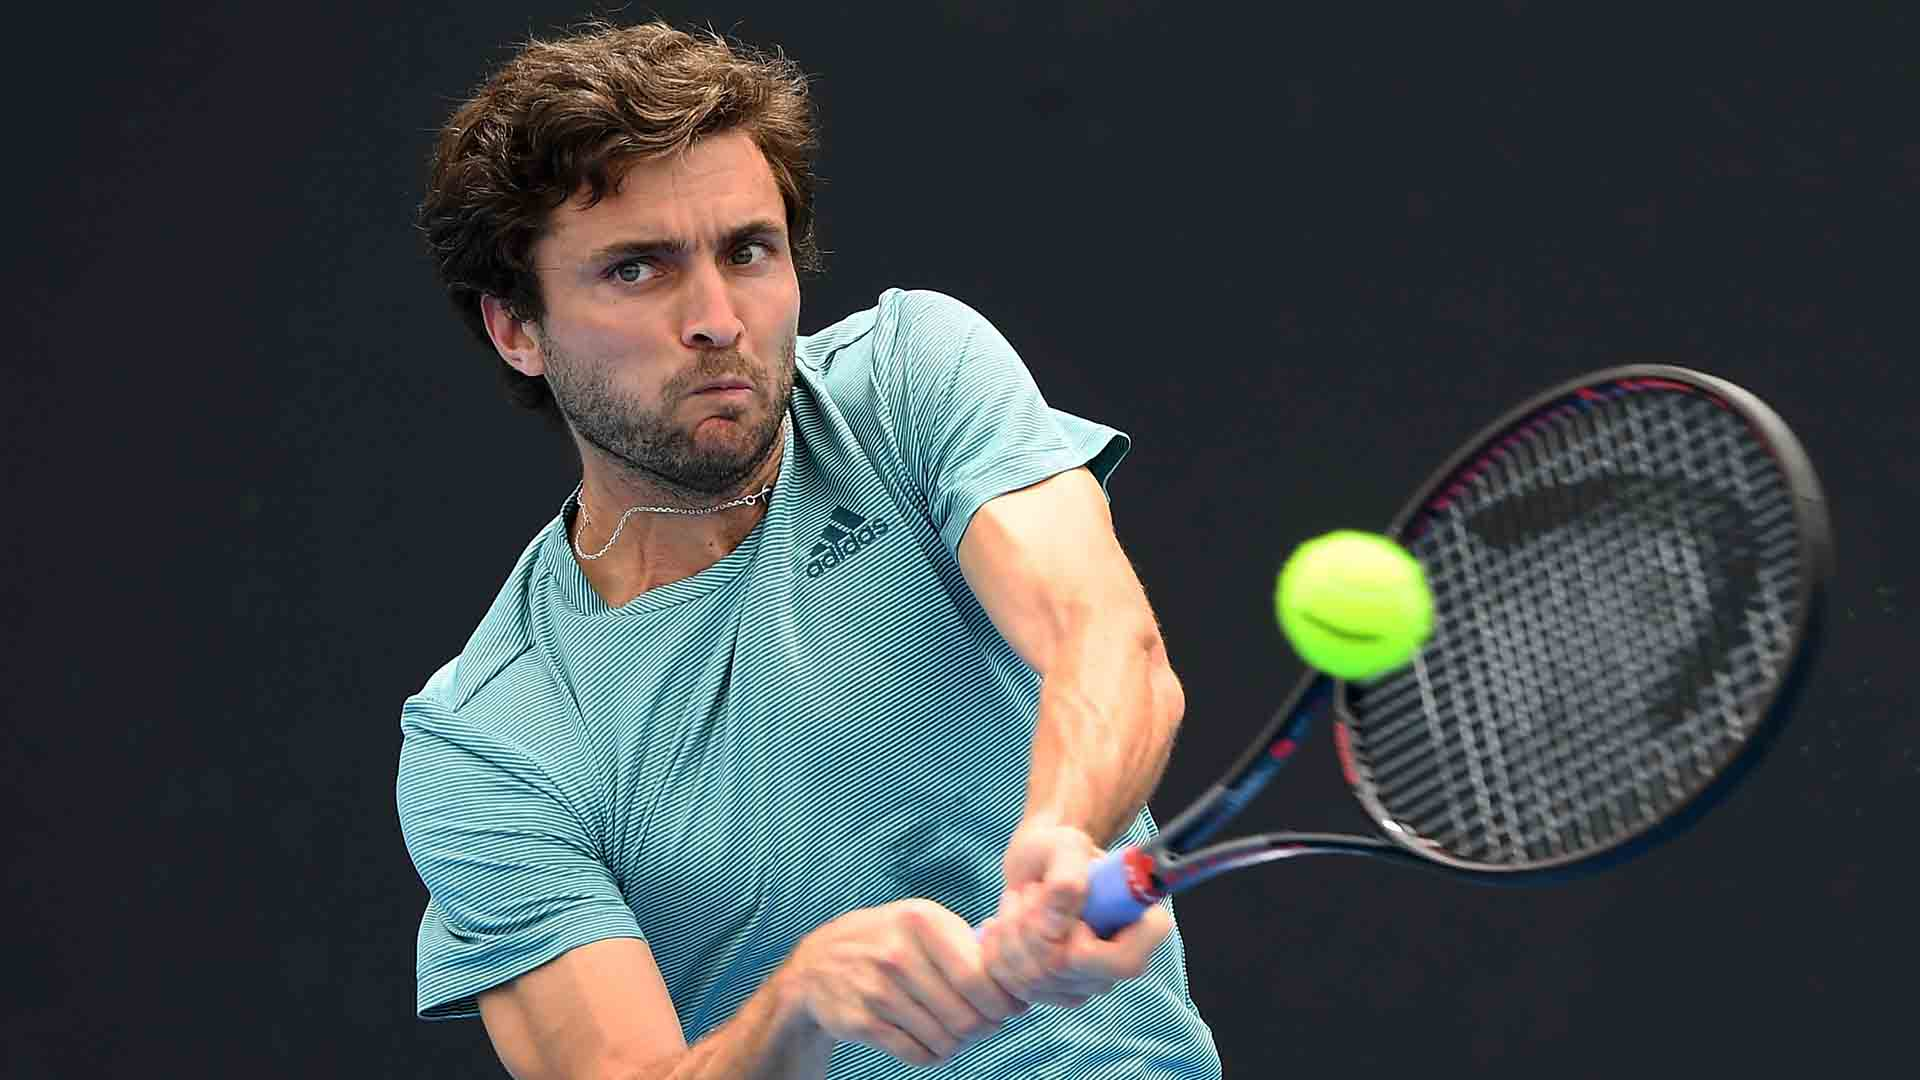 Gilles Simon is aiming to lift his third Open 13 Provence title this week.